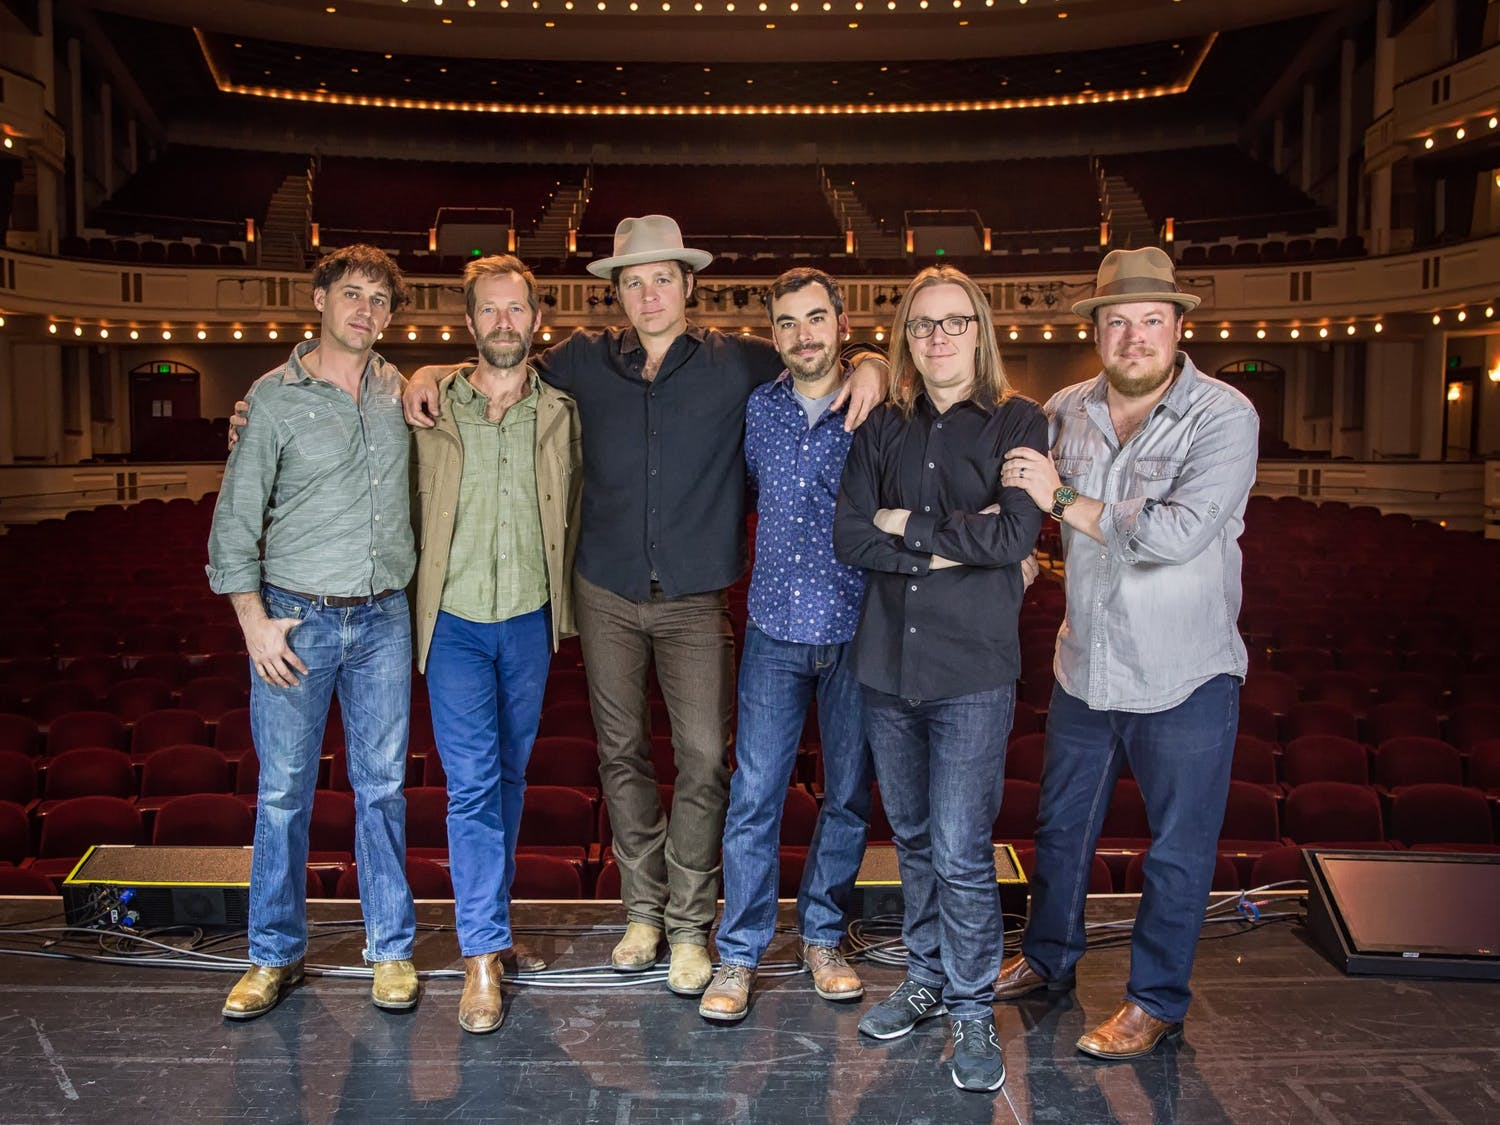 Steep Canyon Rangers, a band formed by UNC alumni, has made waves in the bluegrass scene and earned three grammy nominations. Photo courtesy of Shelly Swanger.